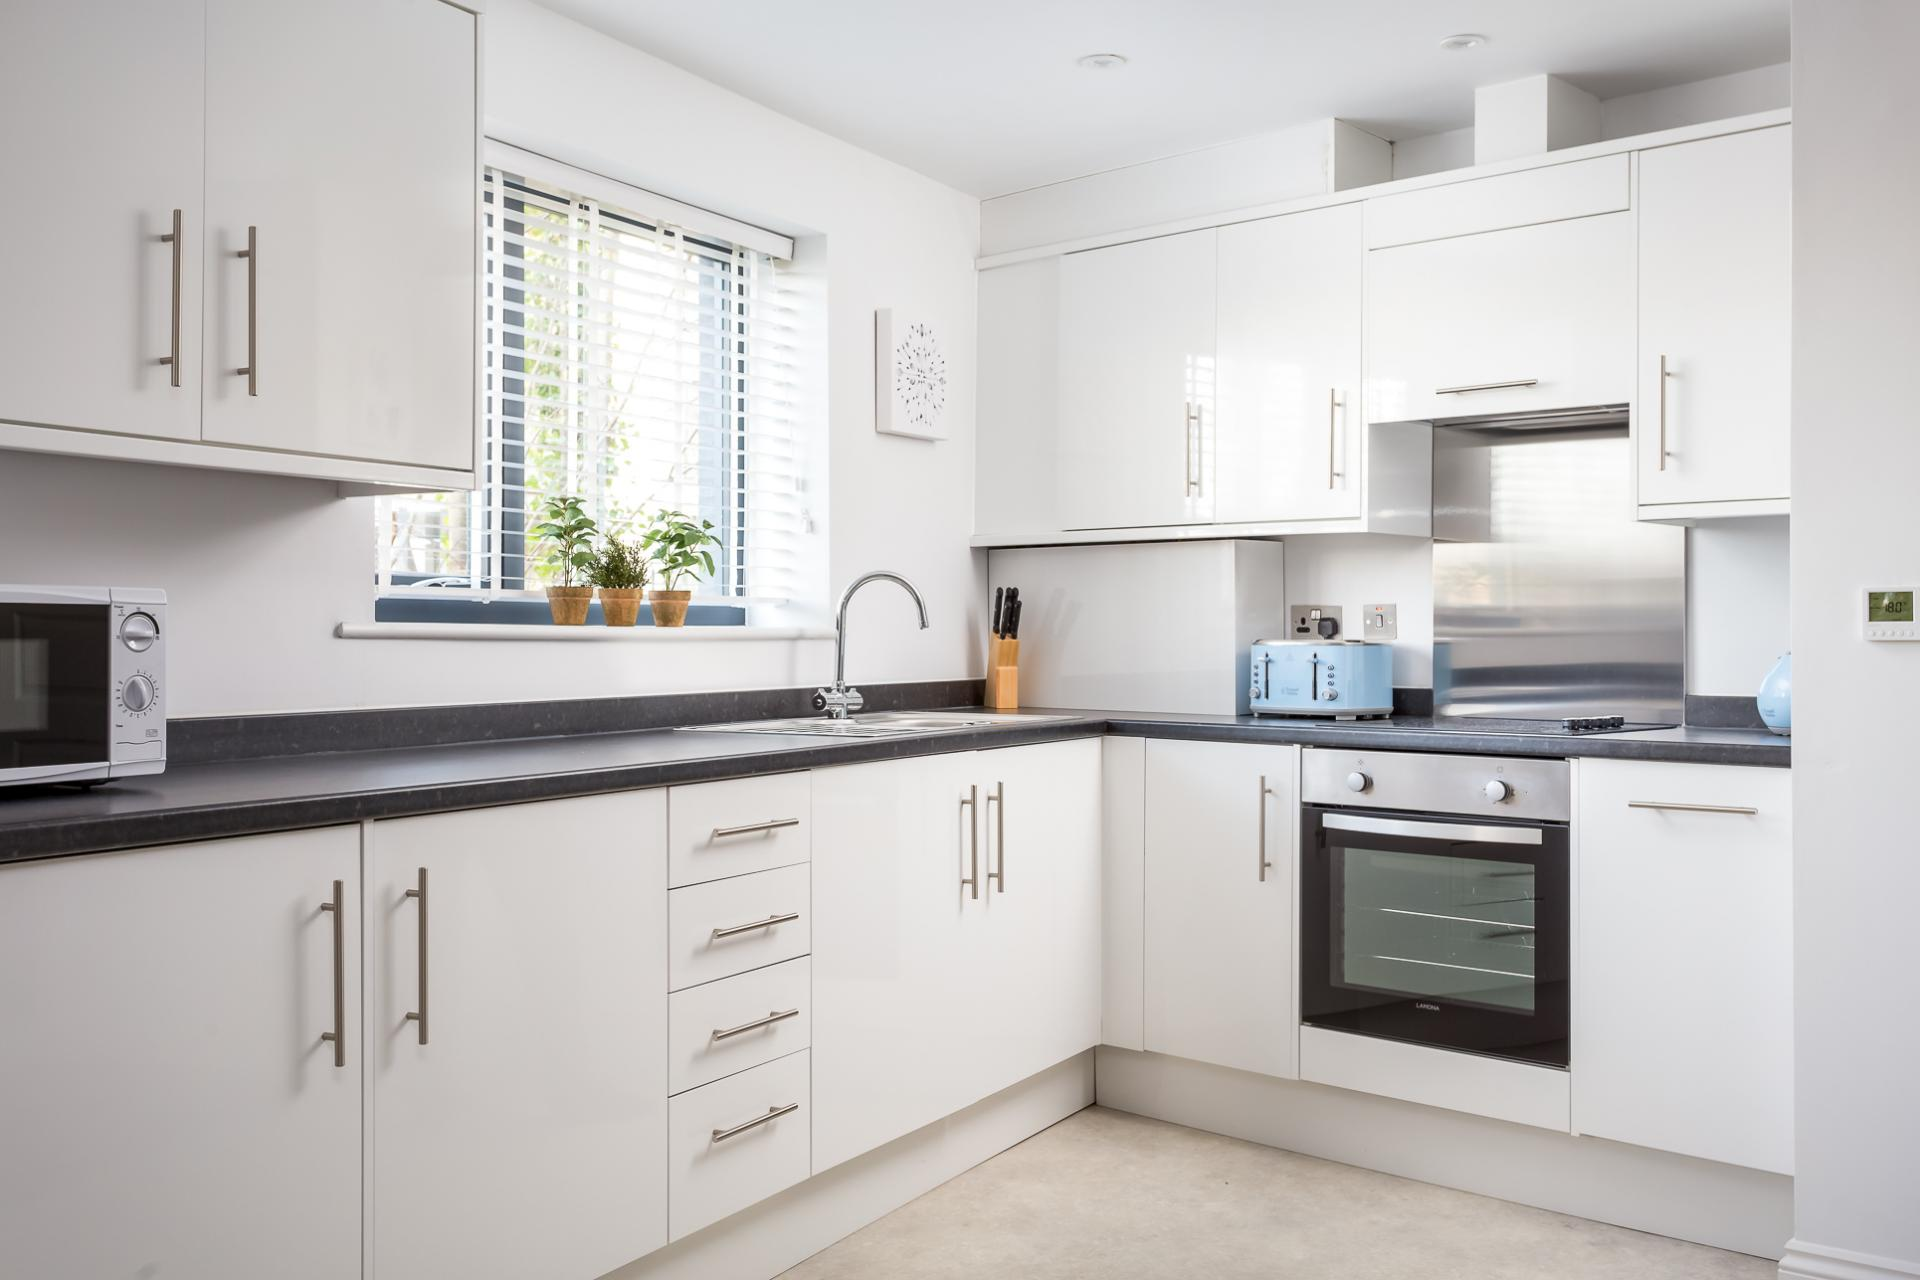 Kitchen at St George's Road Apartment - Citybase Apartments